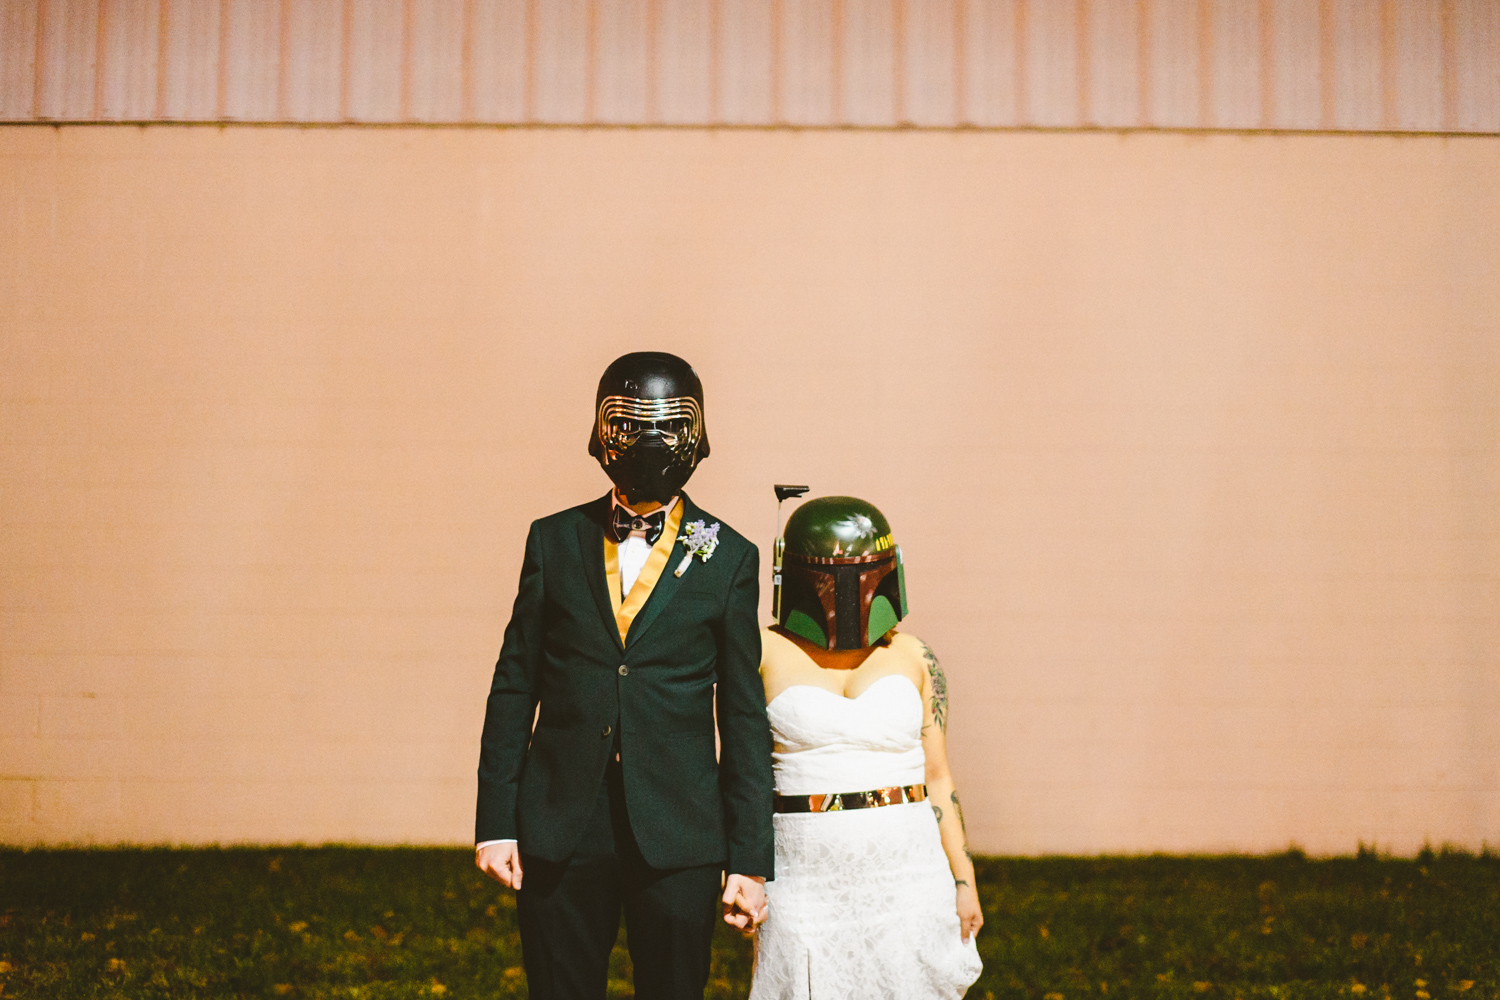 044 - bride and groom pose with kylo ren and boba fett helmets on in richmond virginia star wars wedding.jpg